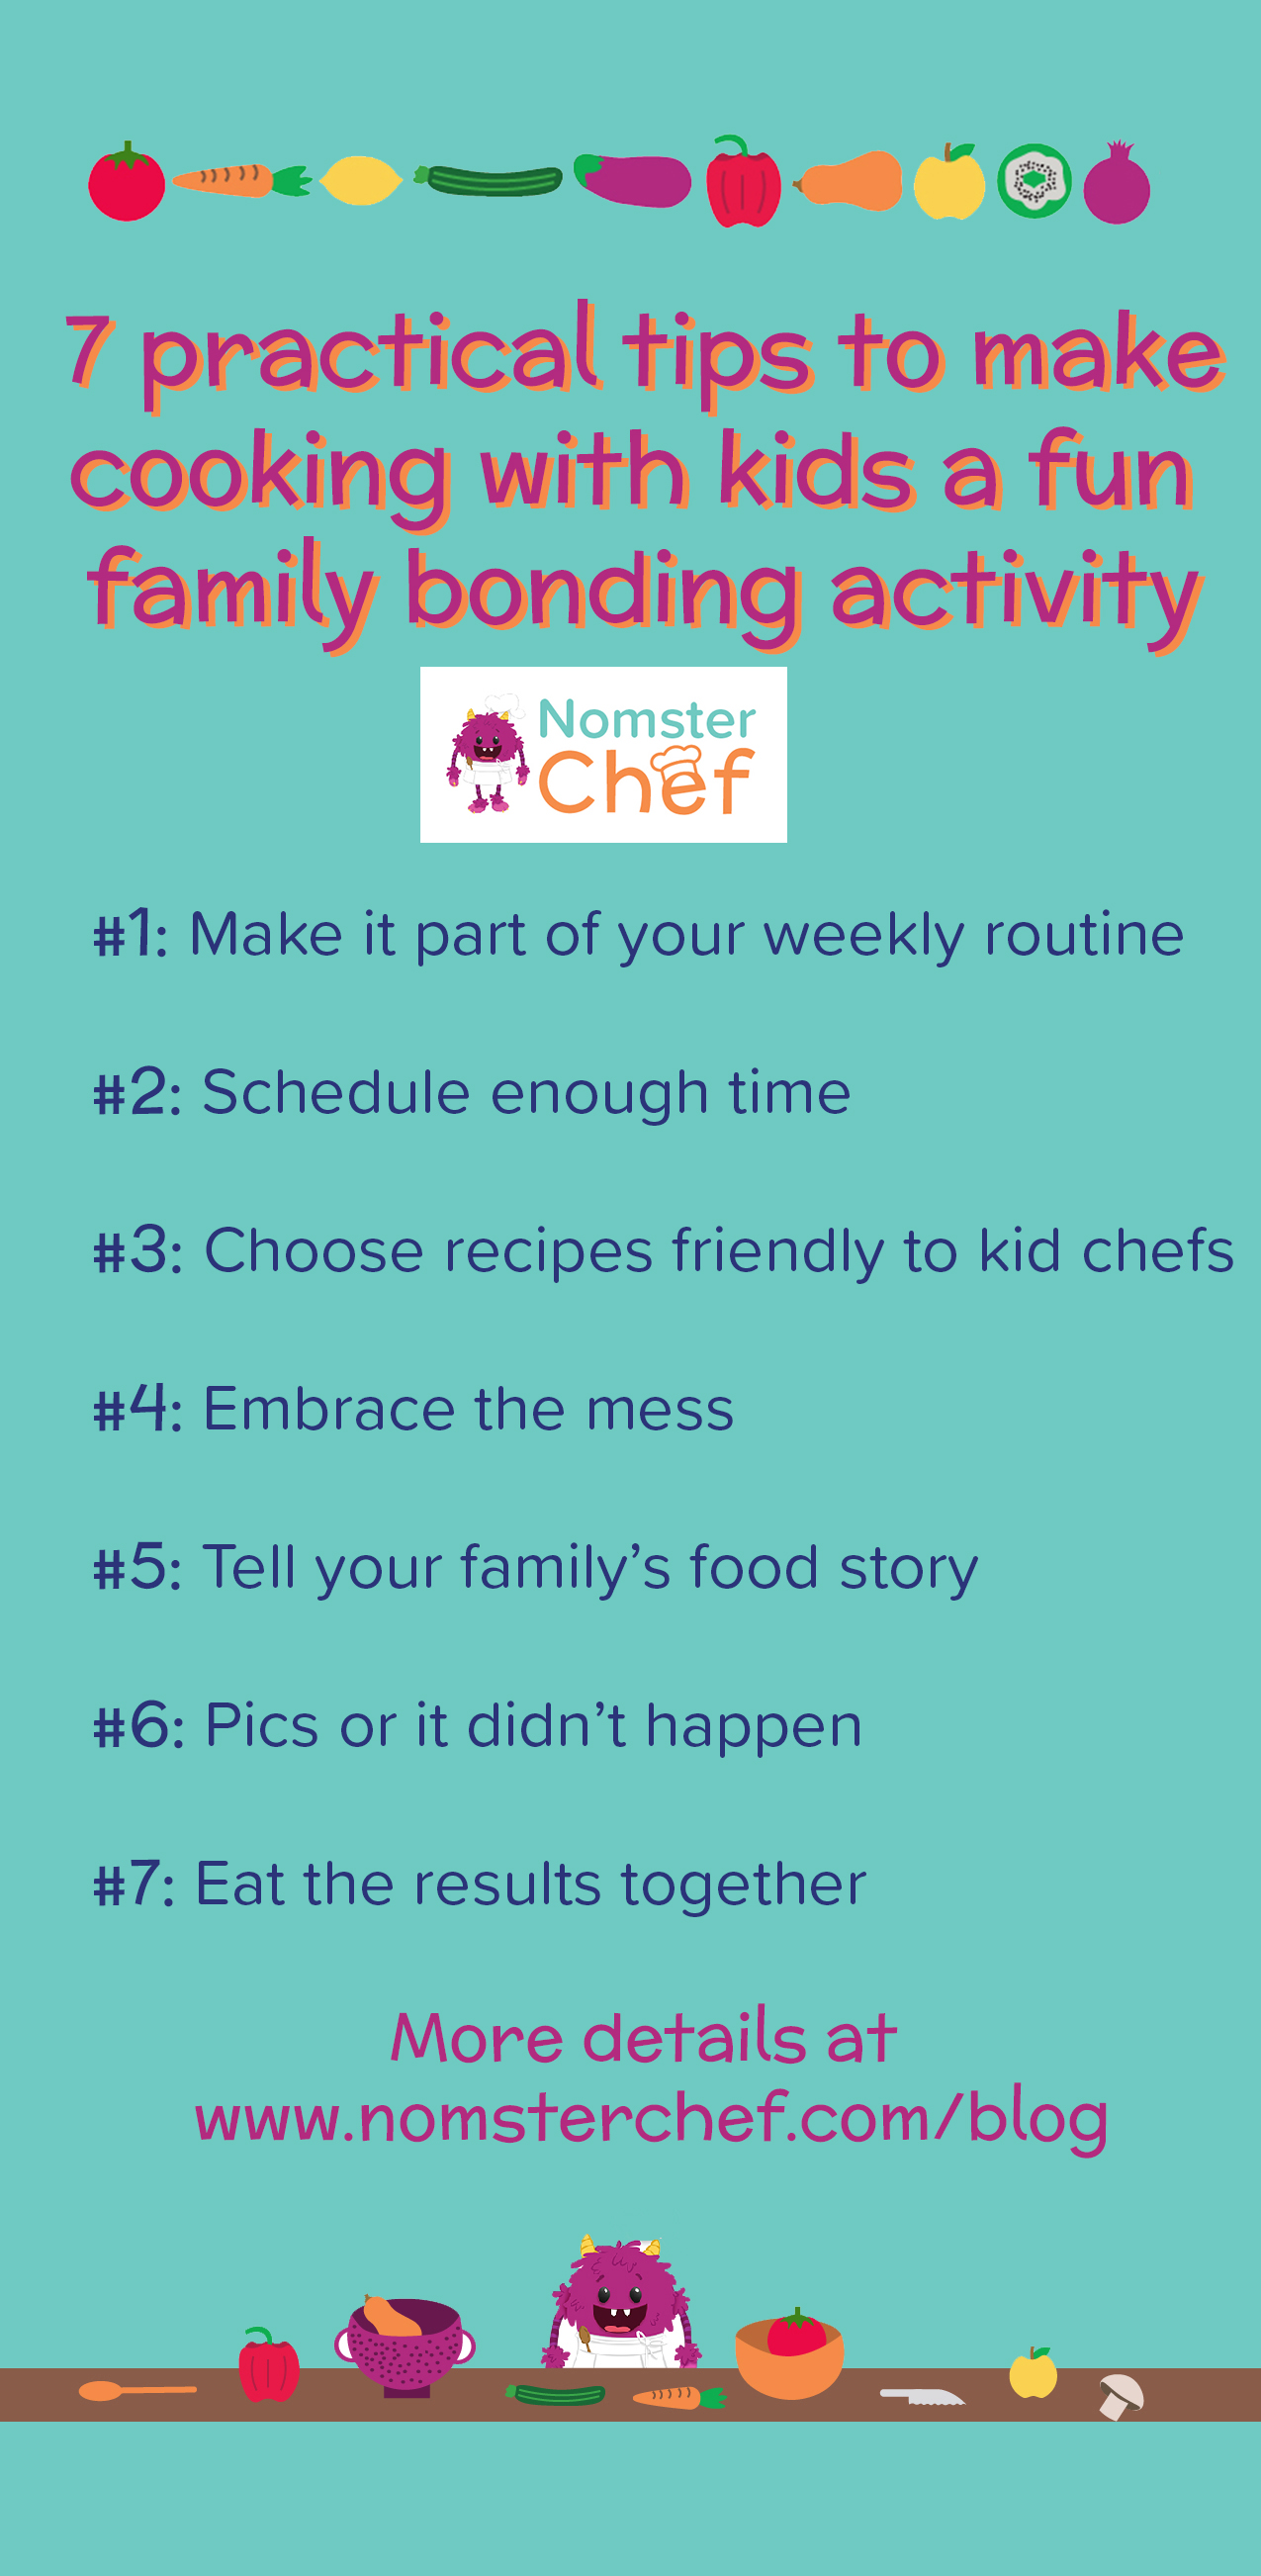 7-practical-tips-to-make-cooking-with-kids-a-fun-family-bonding-activity | Nomster Chef